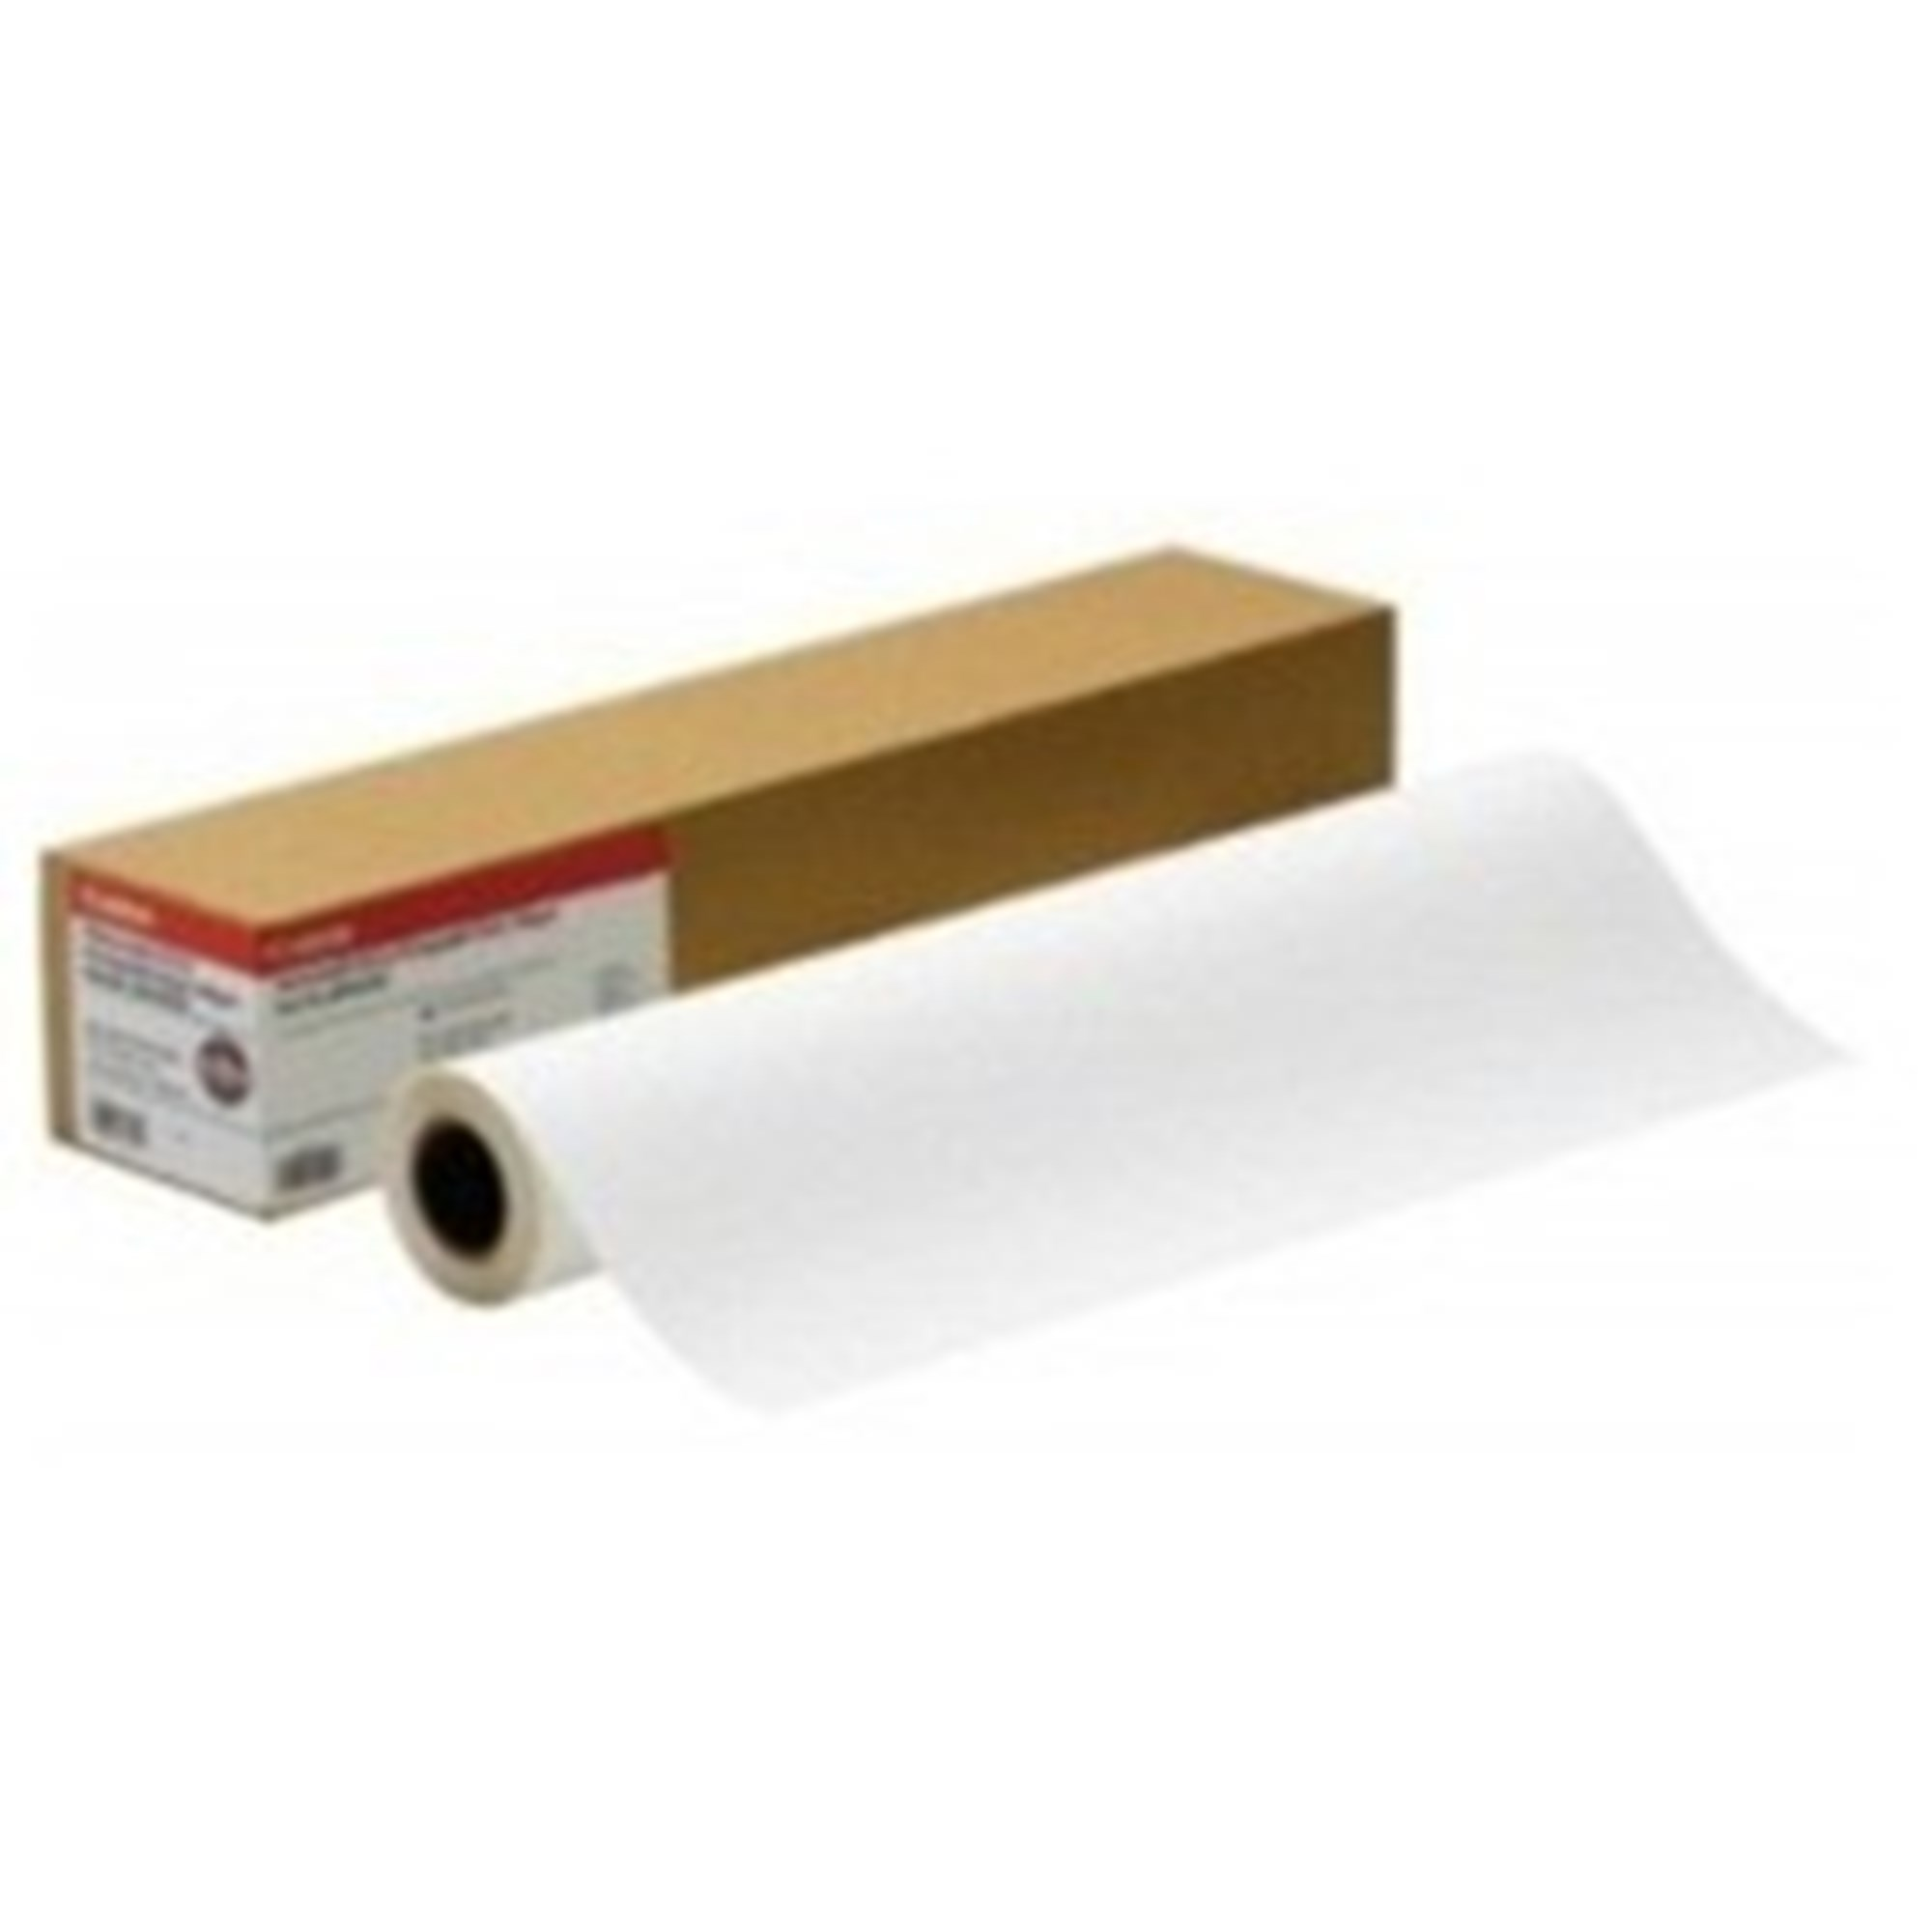 Image of 36'' Standard 80g paper roll 50m 3-pack